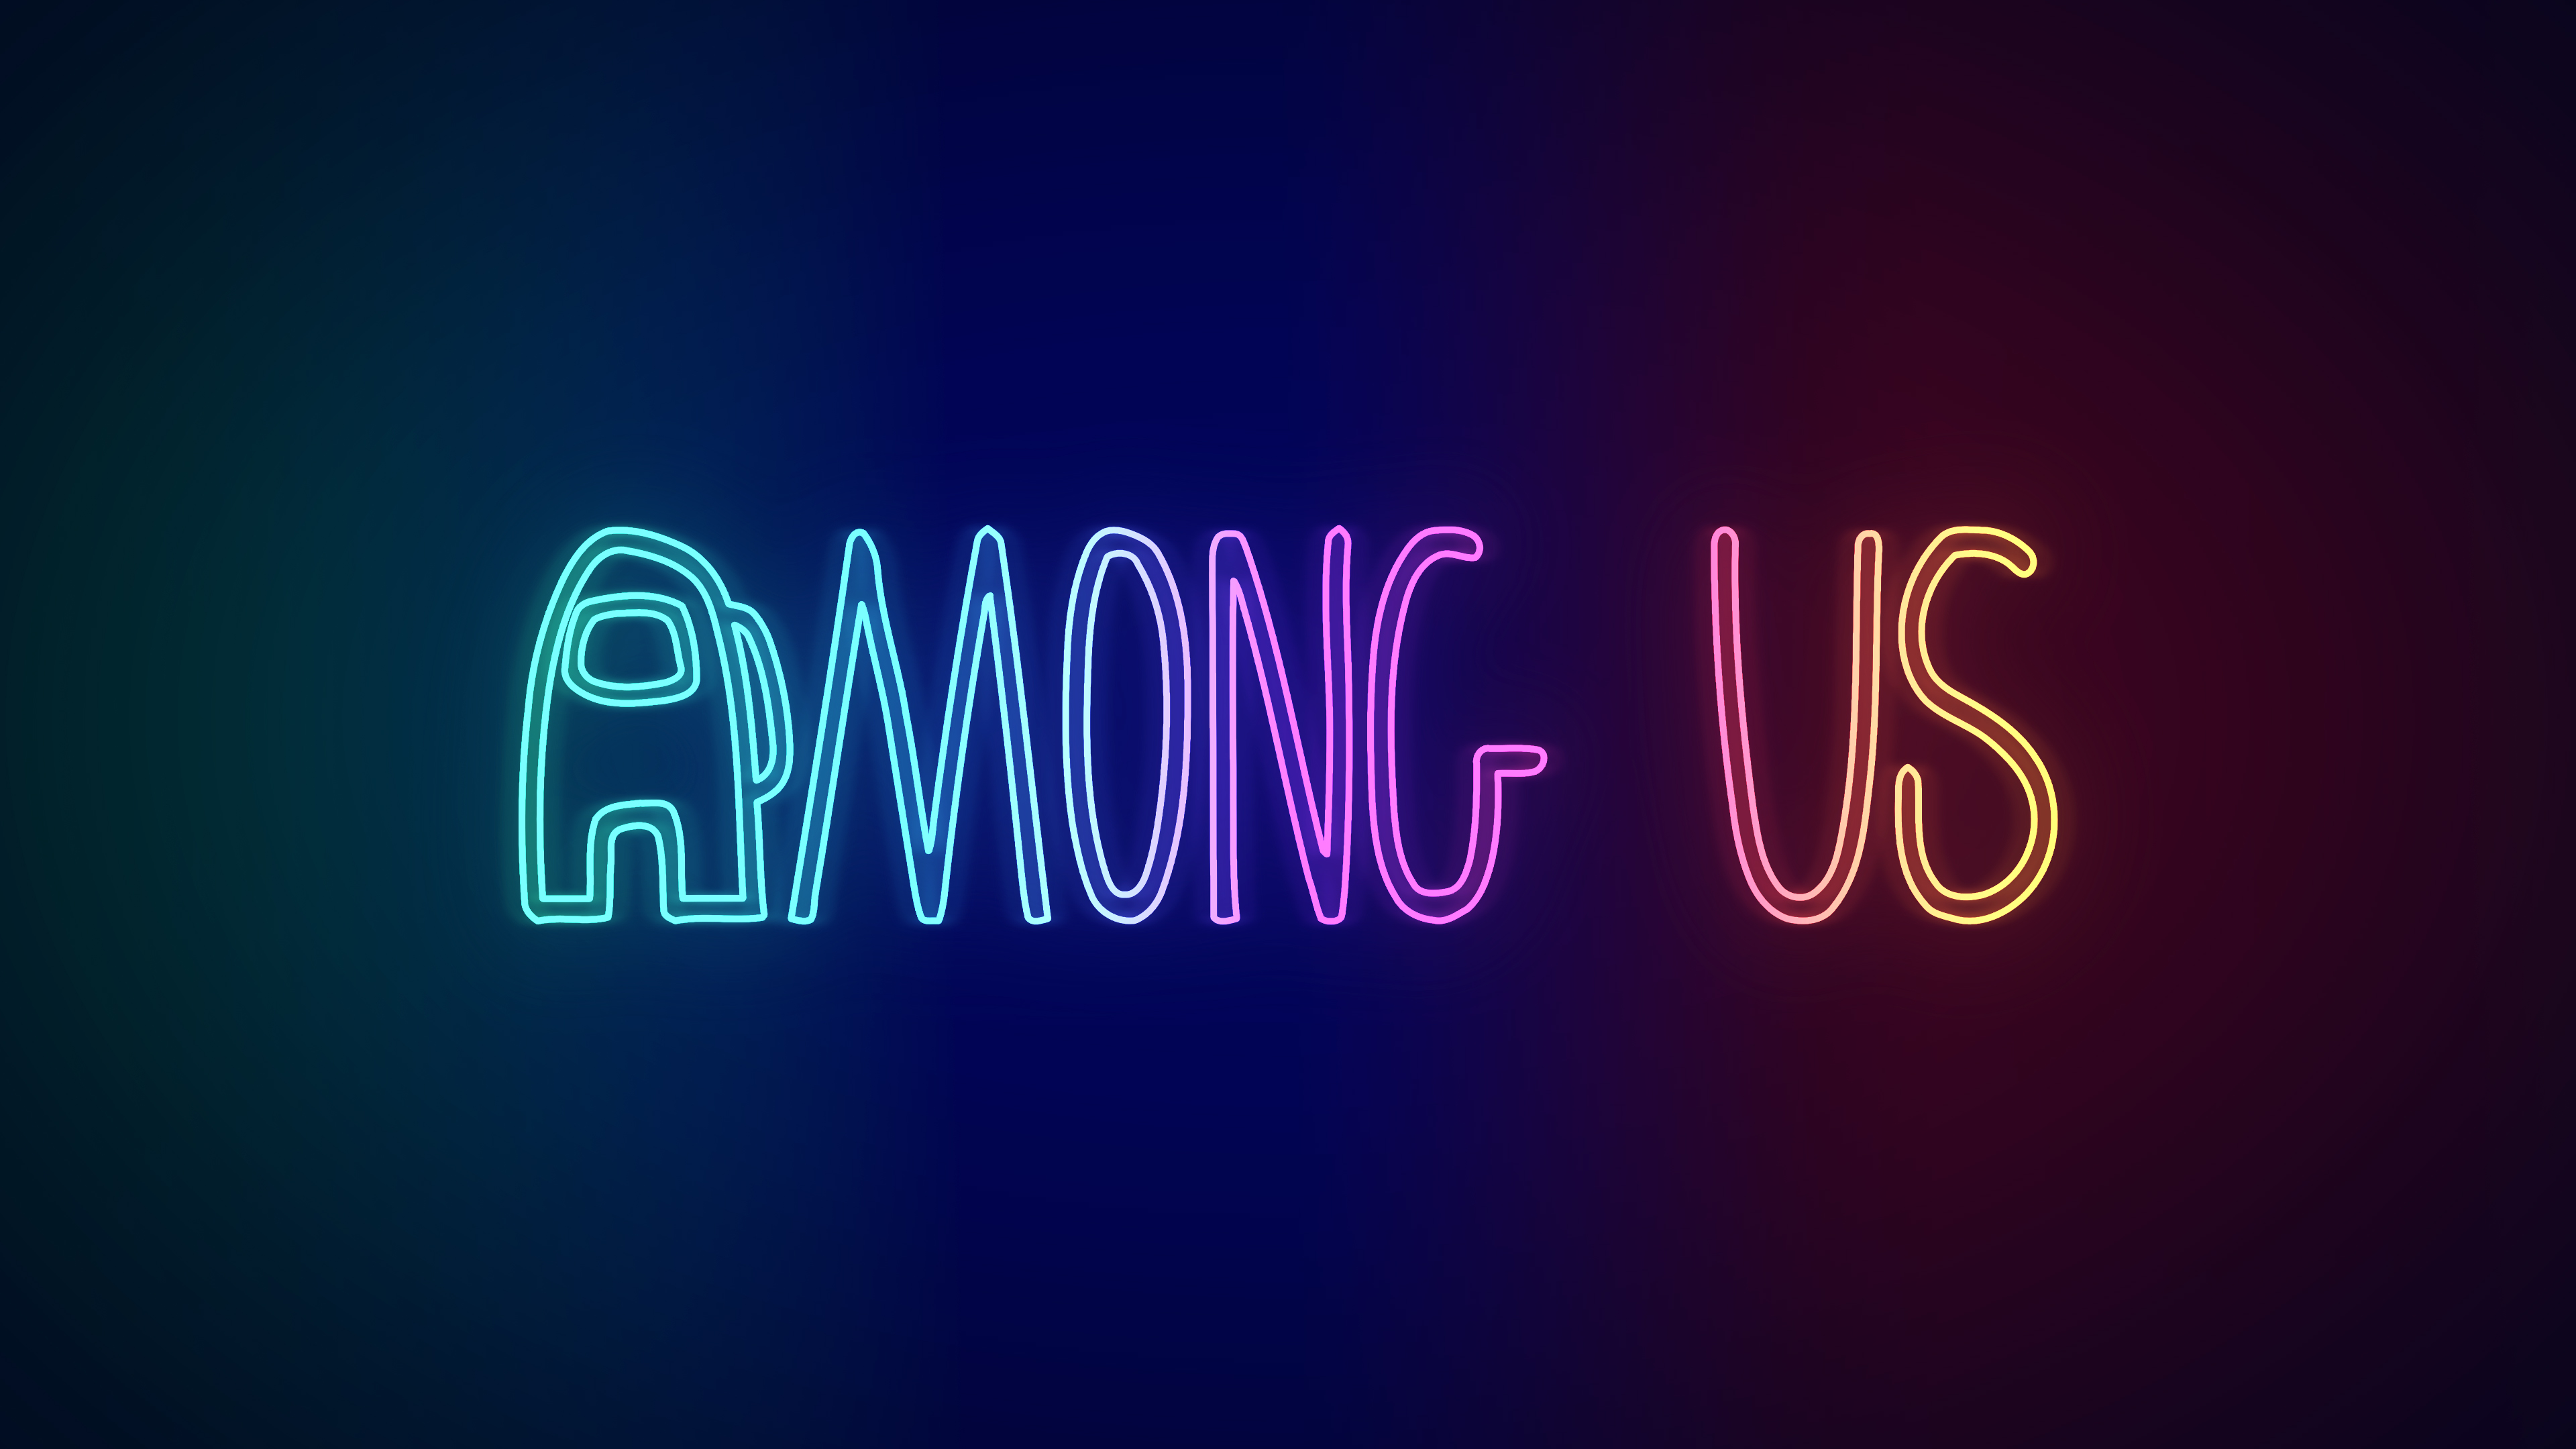 Among Us 4k Wallpaper Neon Ios Games Android Games Pc Games Gradient Background Games 3954